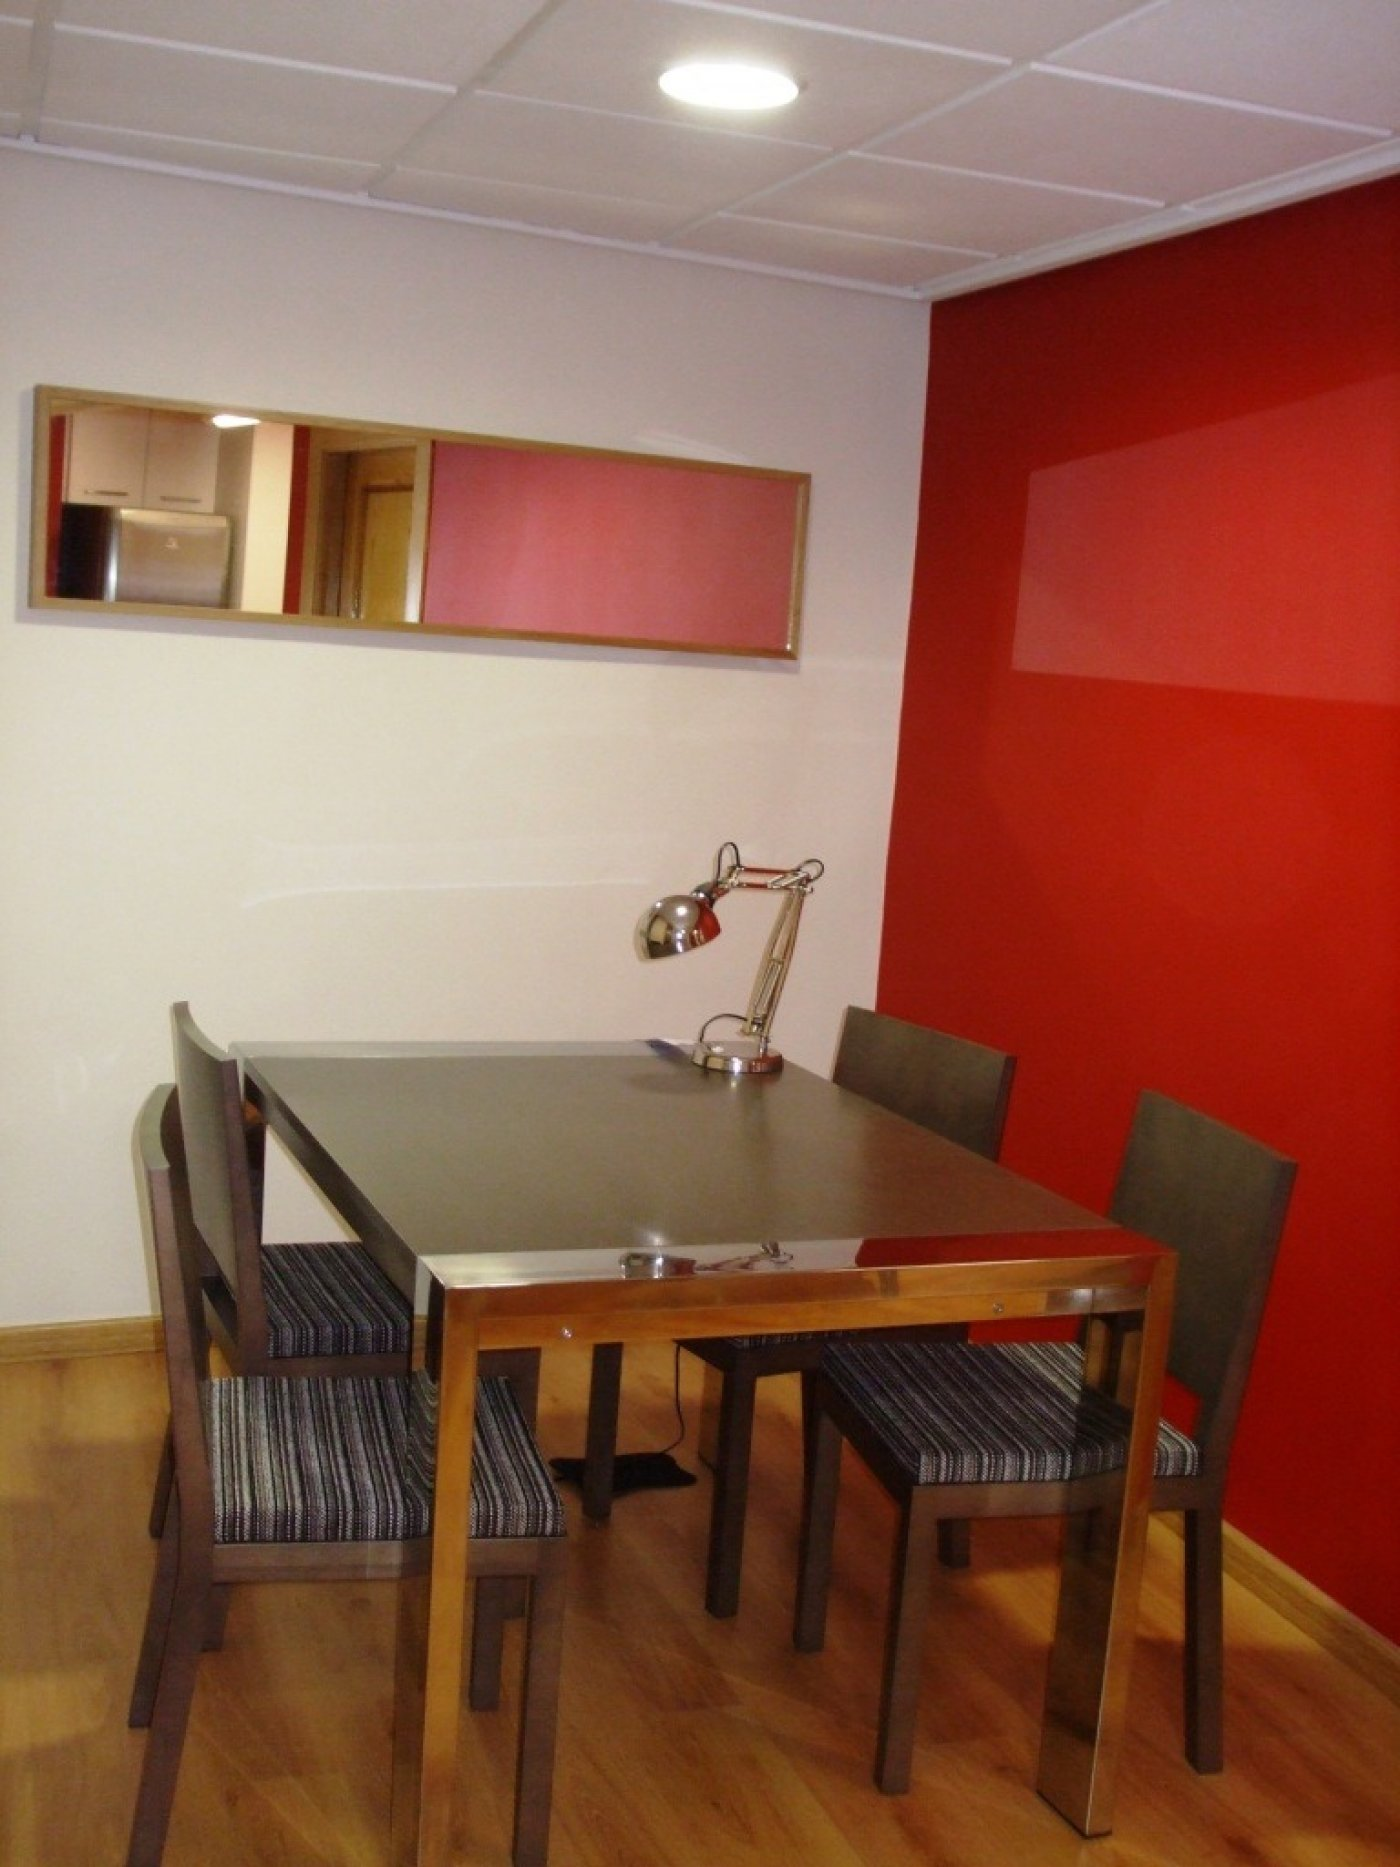 Gallery Image 1 of Flat For rent in Catedral, Murcia